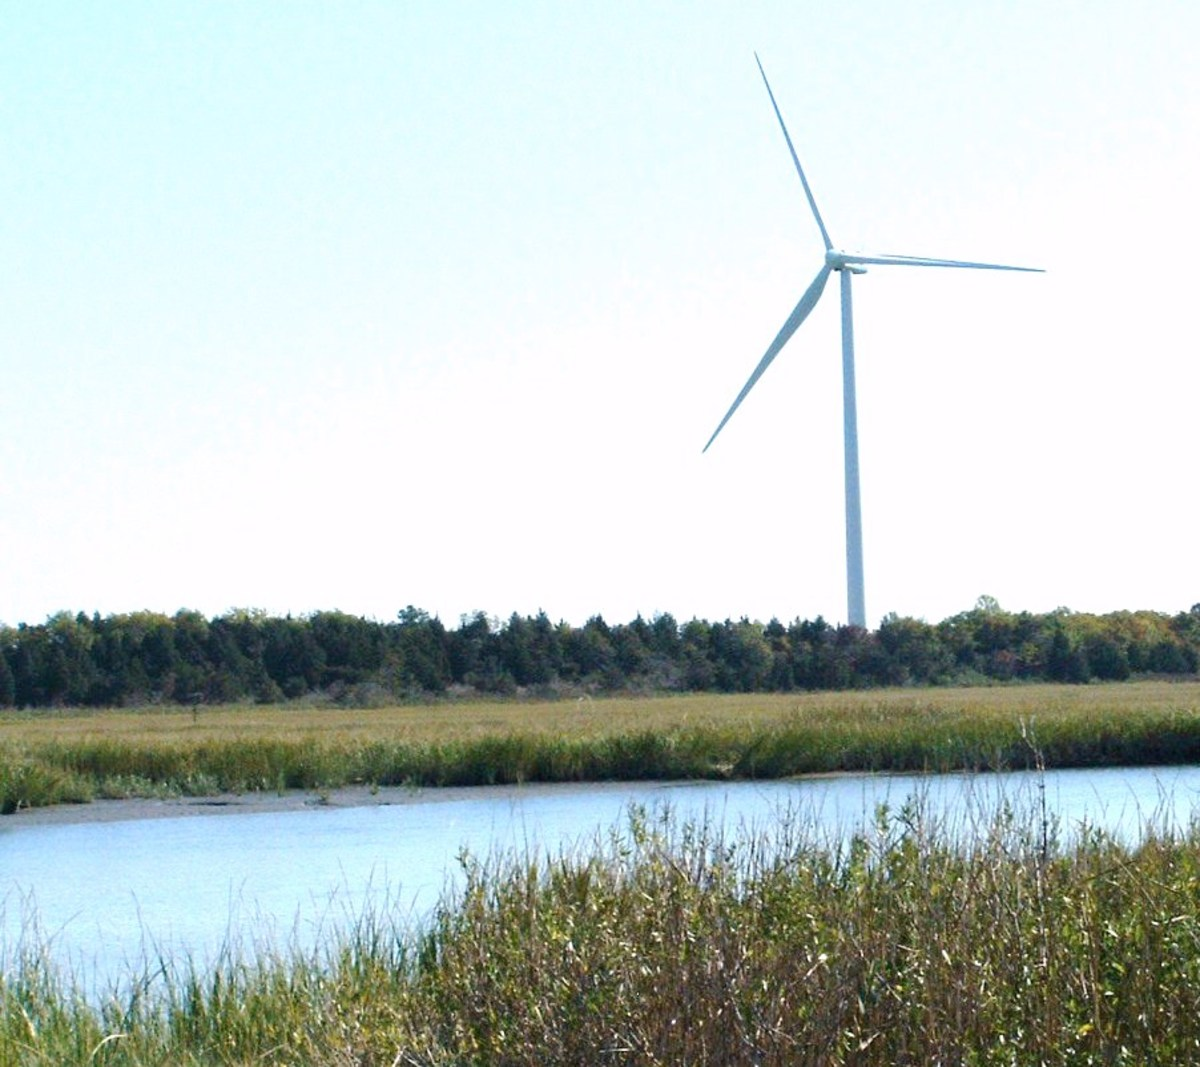 Wind turbine at the University of Delaware Hugh R. Sharp Campus in Lewes is a sleek, modern day windmill used for research and energy production.